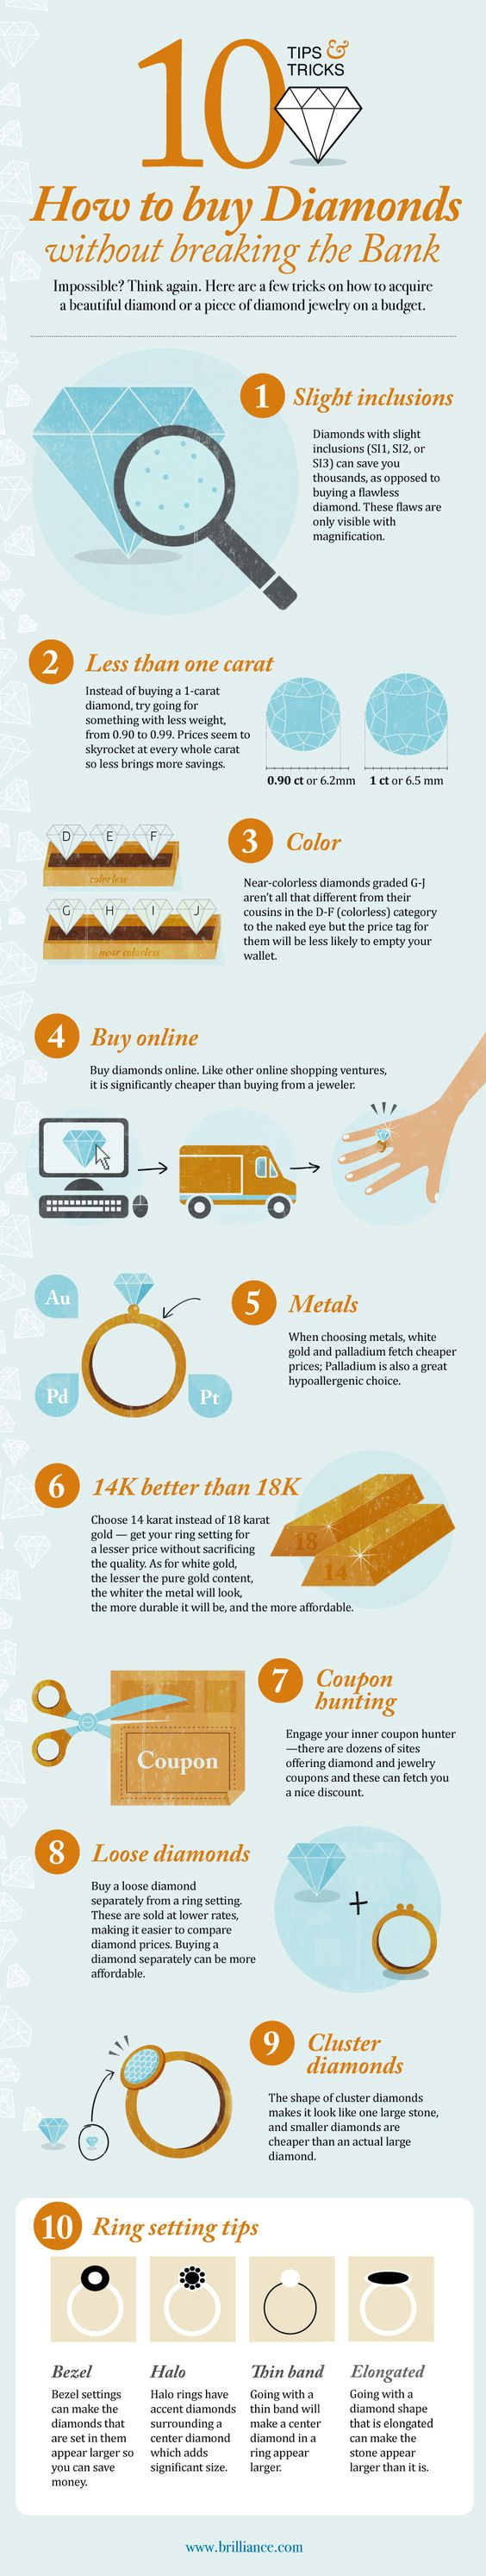 Thanks so much to Brilliance.com for sharing this fantastic diamond buying infographic with us! You can watch our diamond buying guide video for more tips on how to get the best diamond on a budget, and check back every Friday this month for more diamond buying tips during April's Diamond Month celebration at Raymond Lee Jewelers.